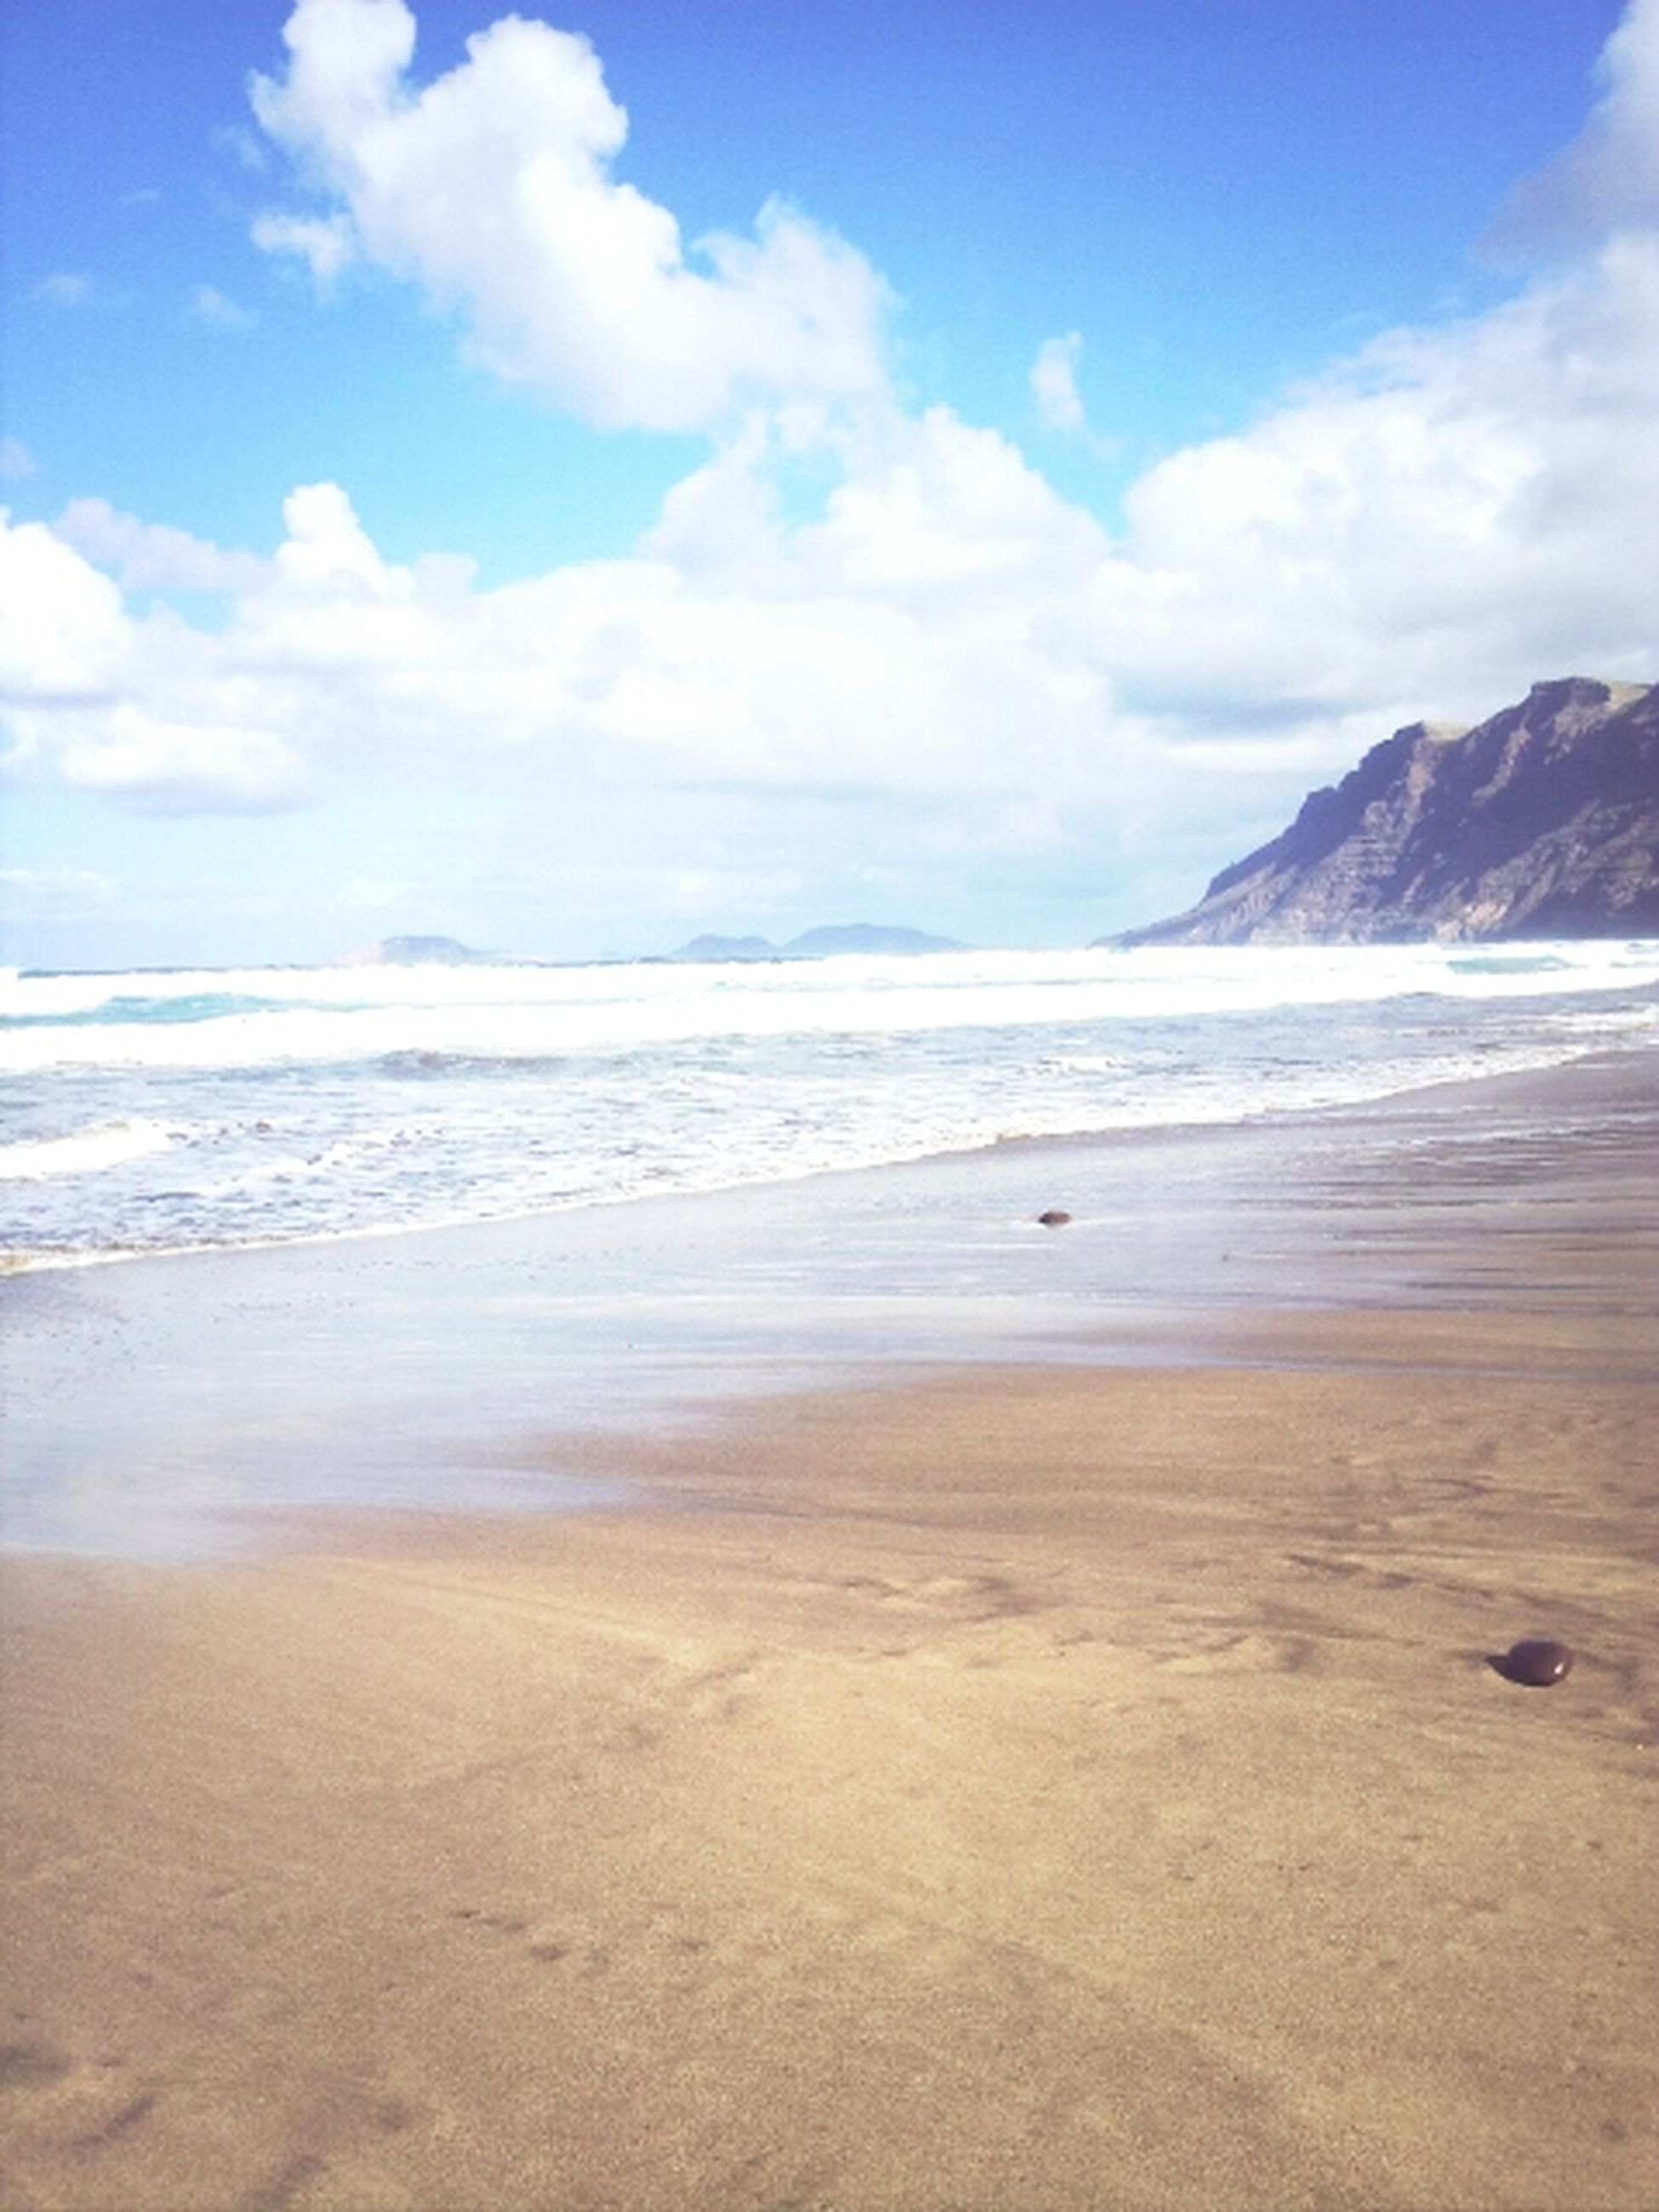 beach, sea, sand, sky, water, tranquil scene, tranquility, scenics, shore, beauty in nature, nature, mountain, cloud - sky, horizon over water, idyllic, cloud, coastline, wave, remote, day